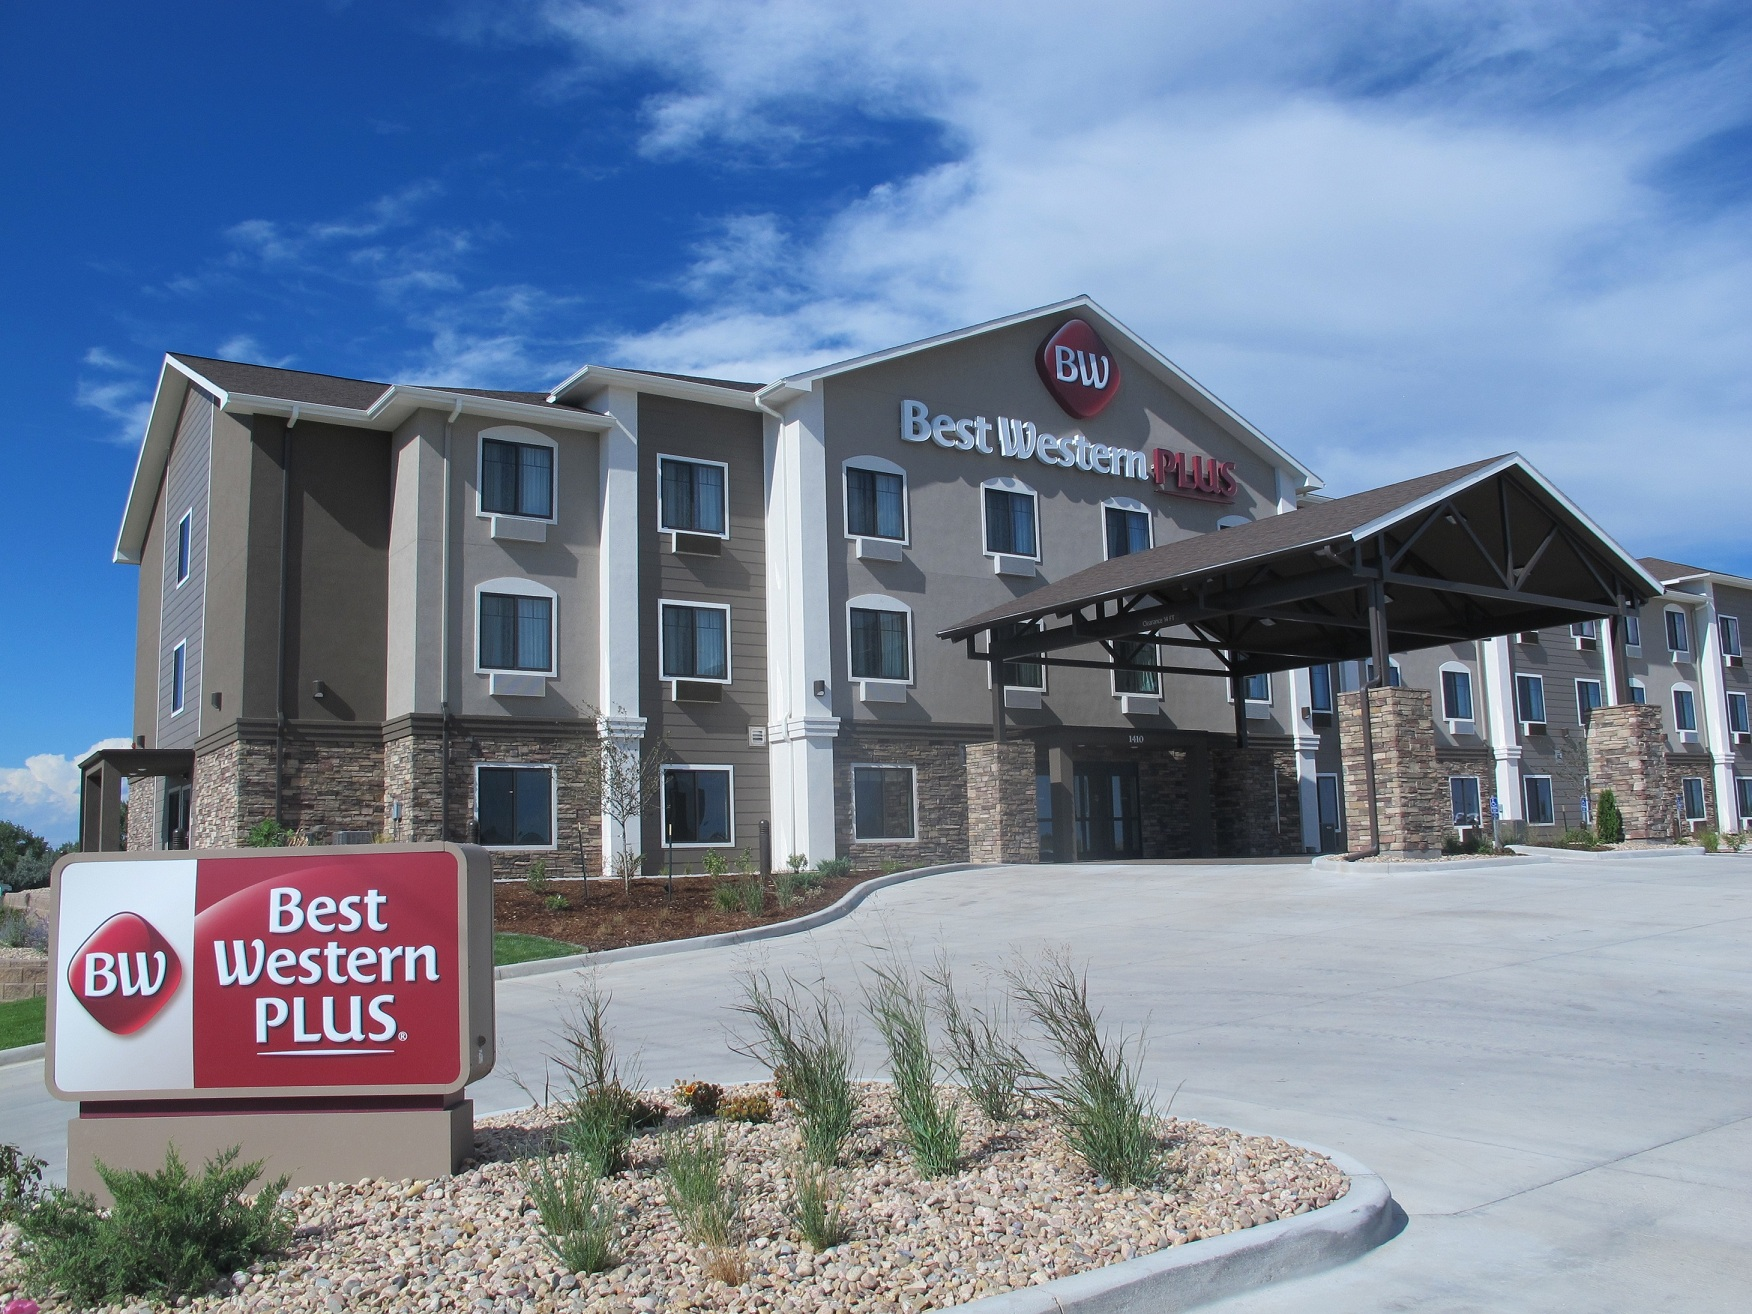 Best Western Plus USA